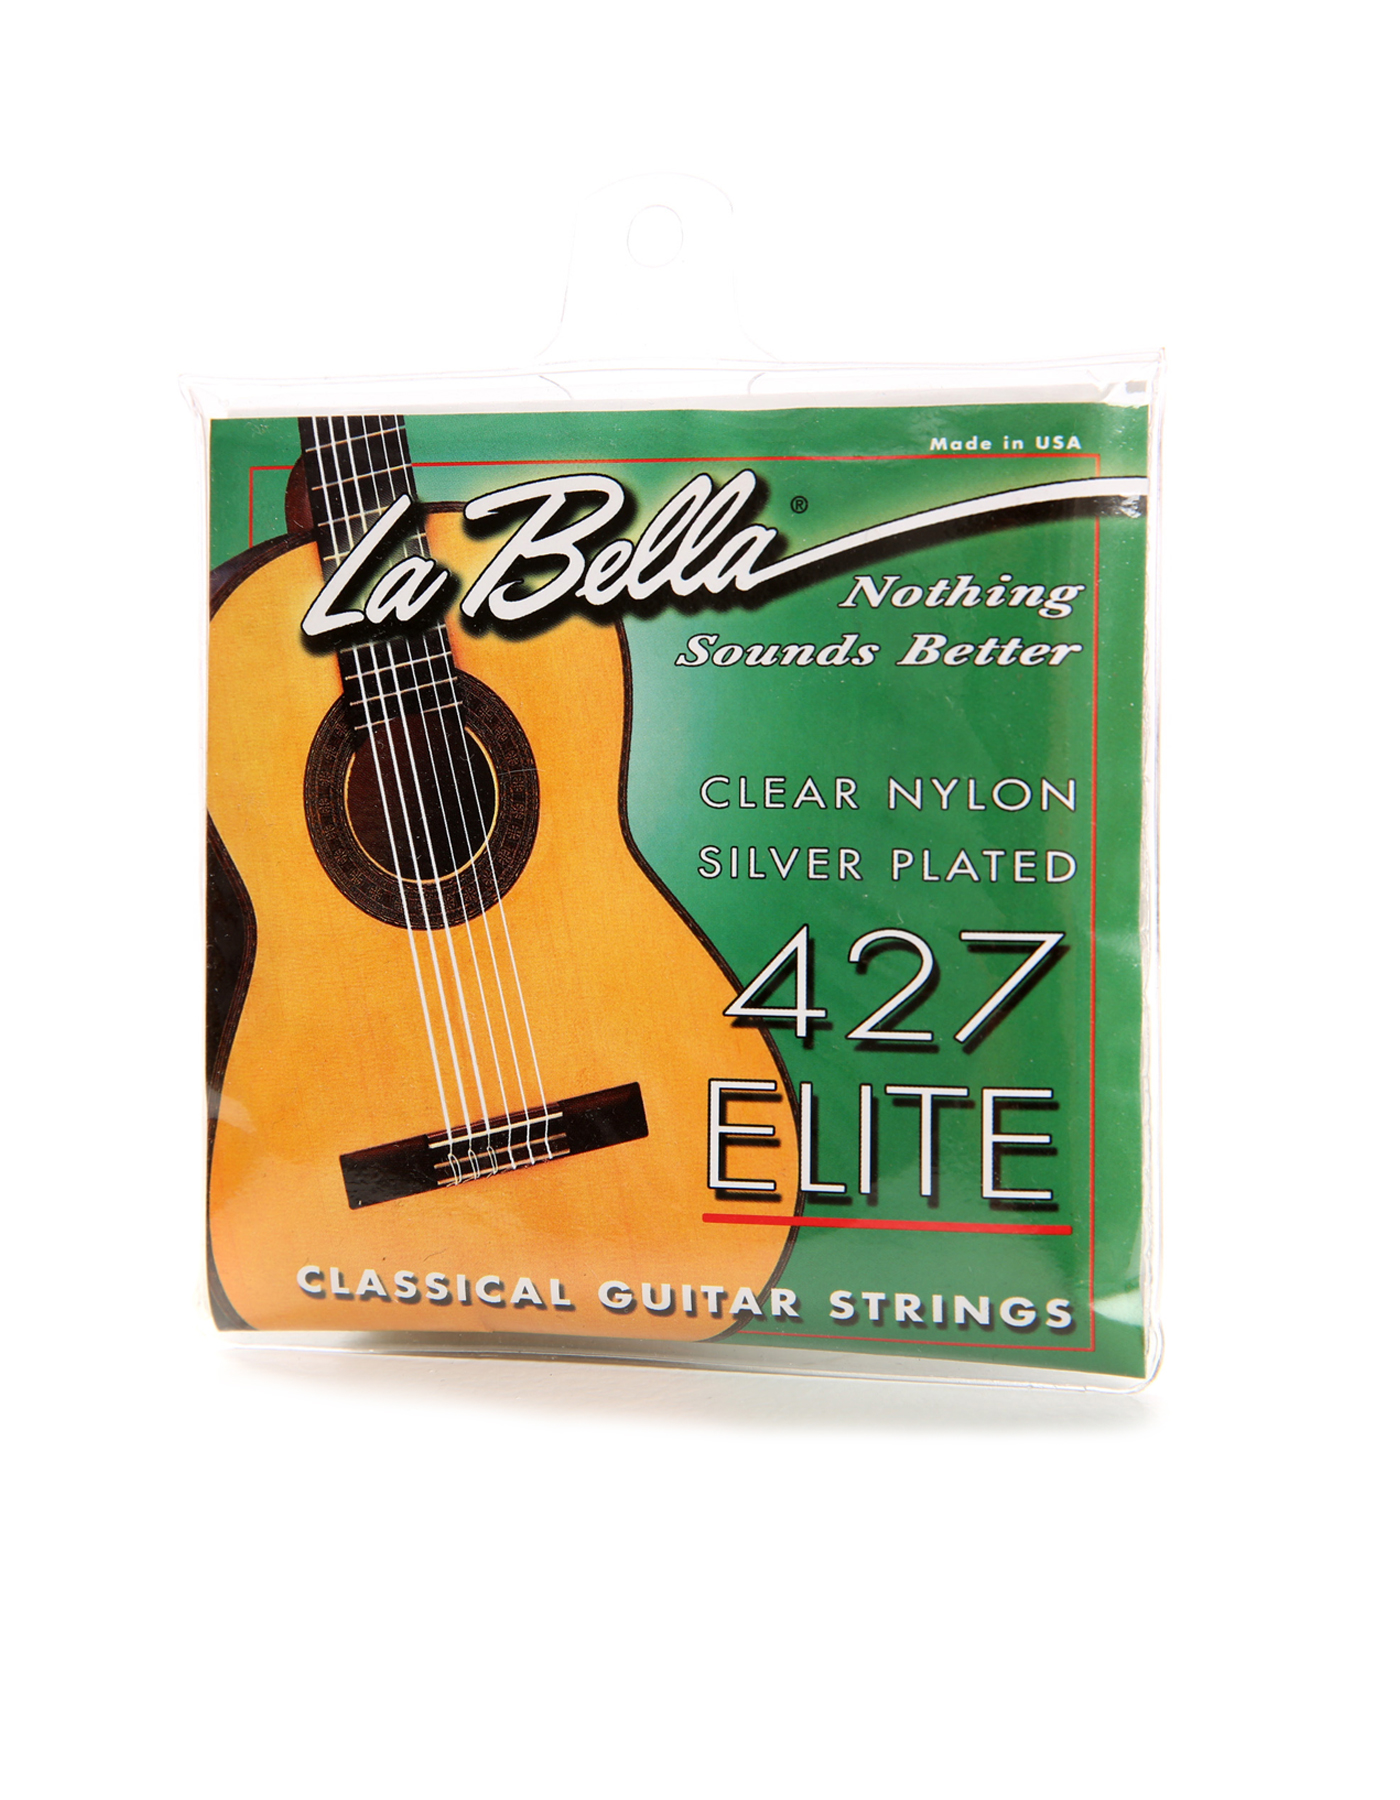 Guitar strings La Bella 427 Elite medium tension